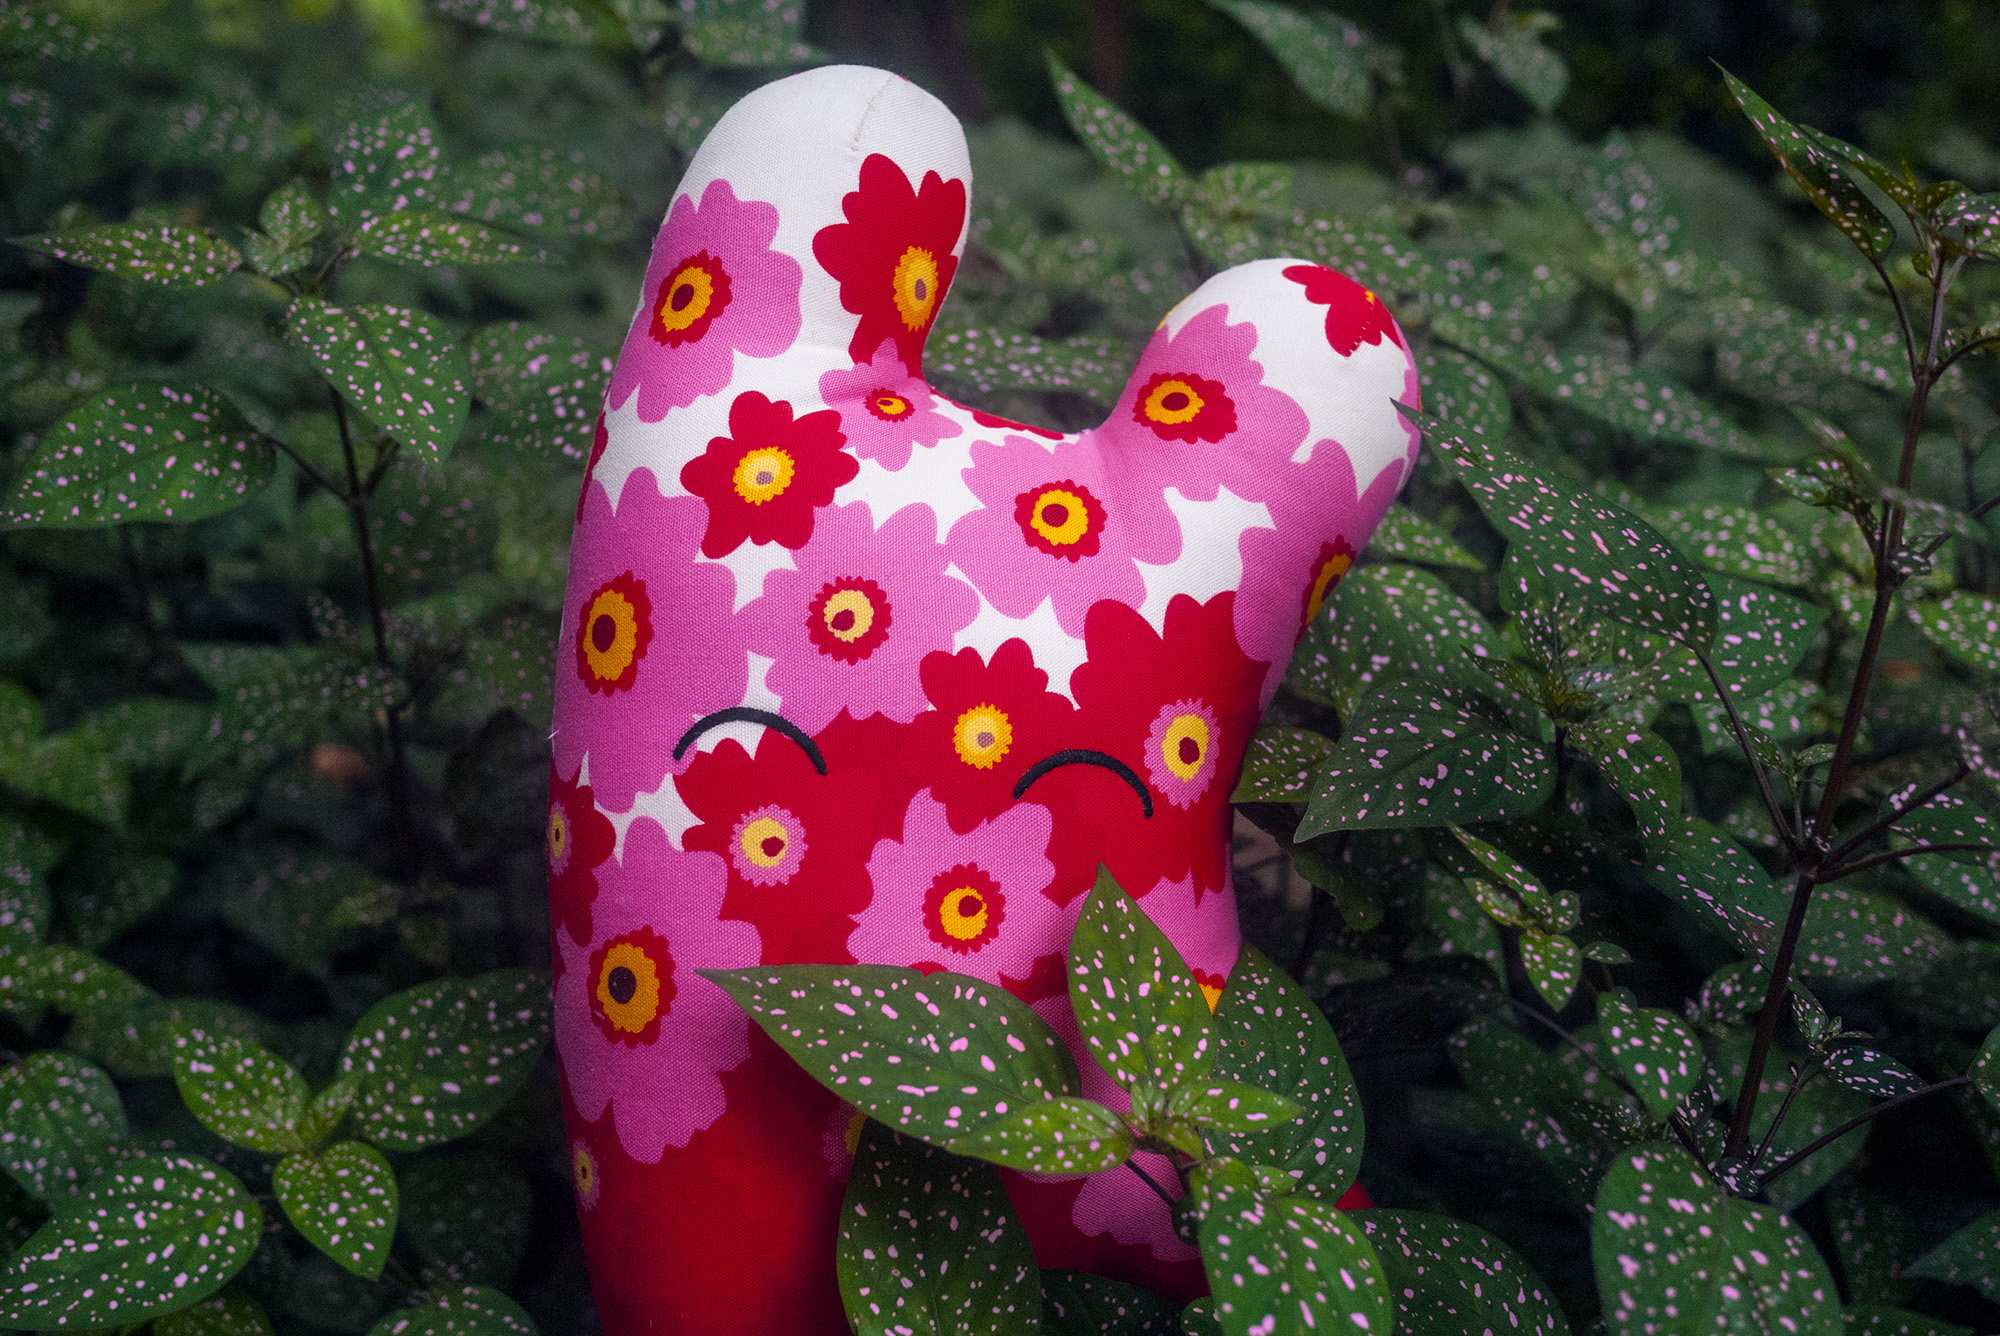 Happy Sleepy, a stuffed toy made by Magda Wojtyra, posed with matching plants with pink dots on the leaves.